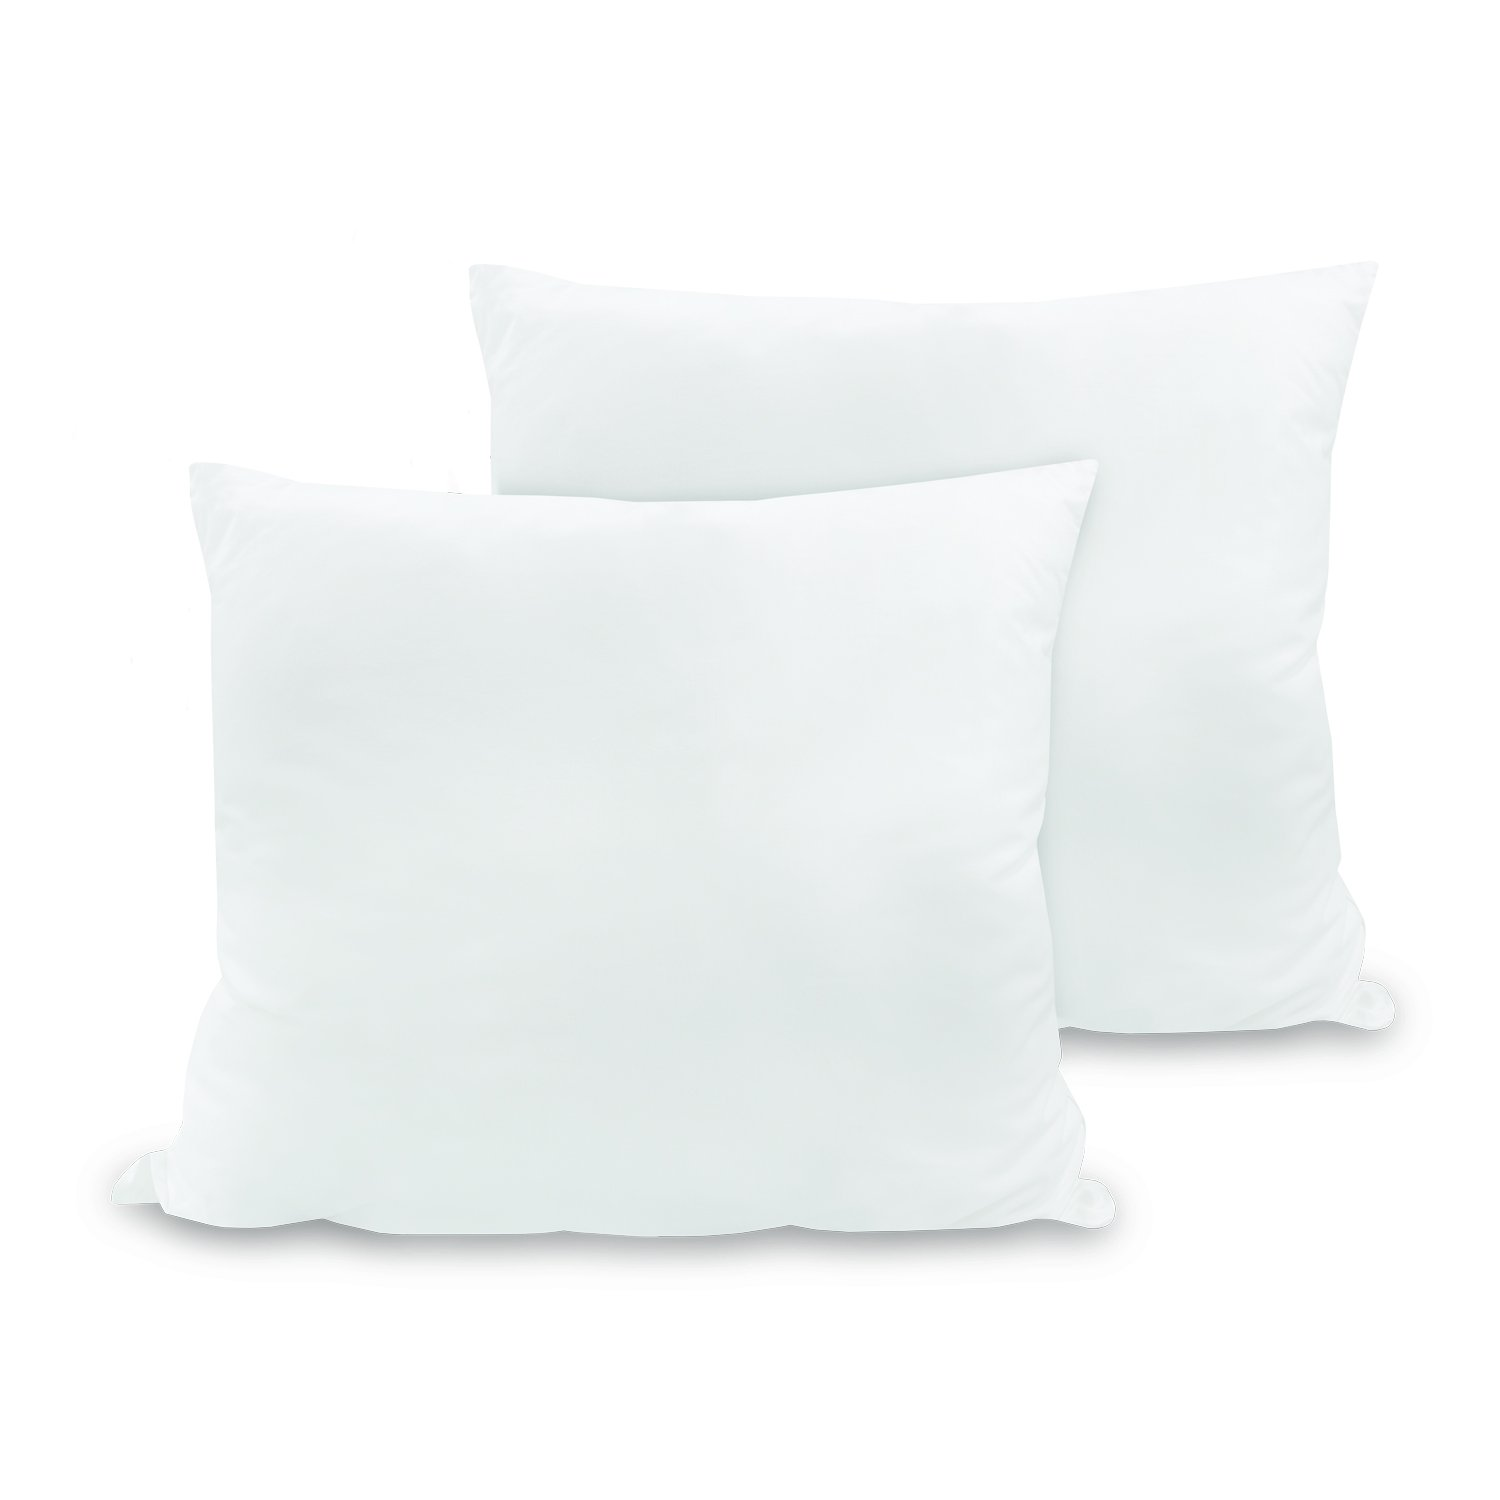 BioPedic Luxurious 28-by-28 Inch Euro Square Pillows, 2-Pack by BioPEDIC